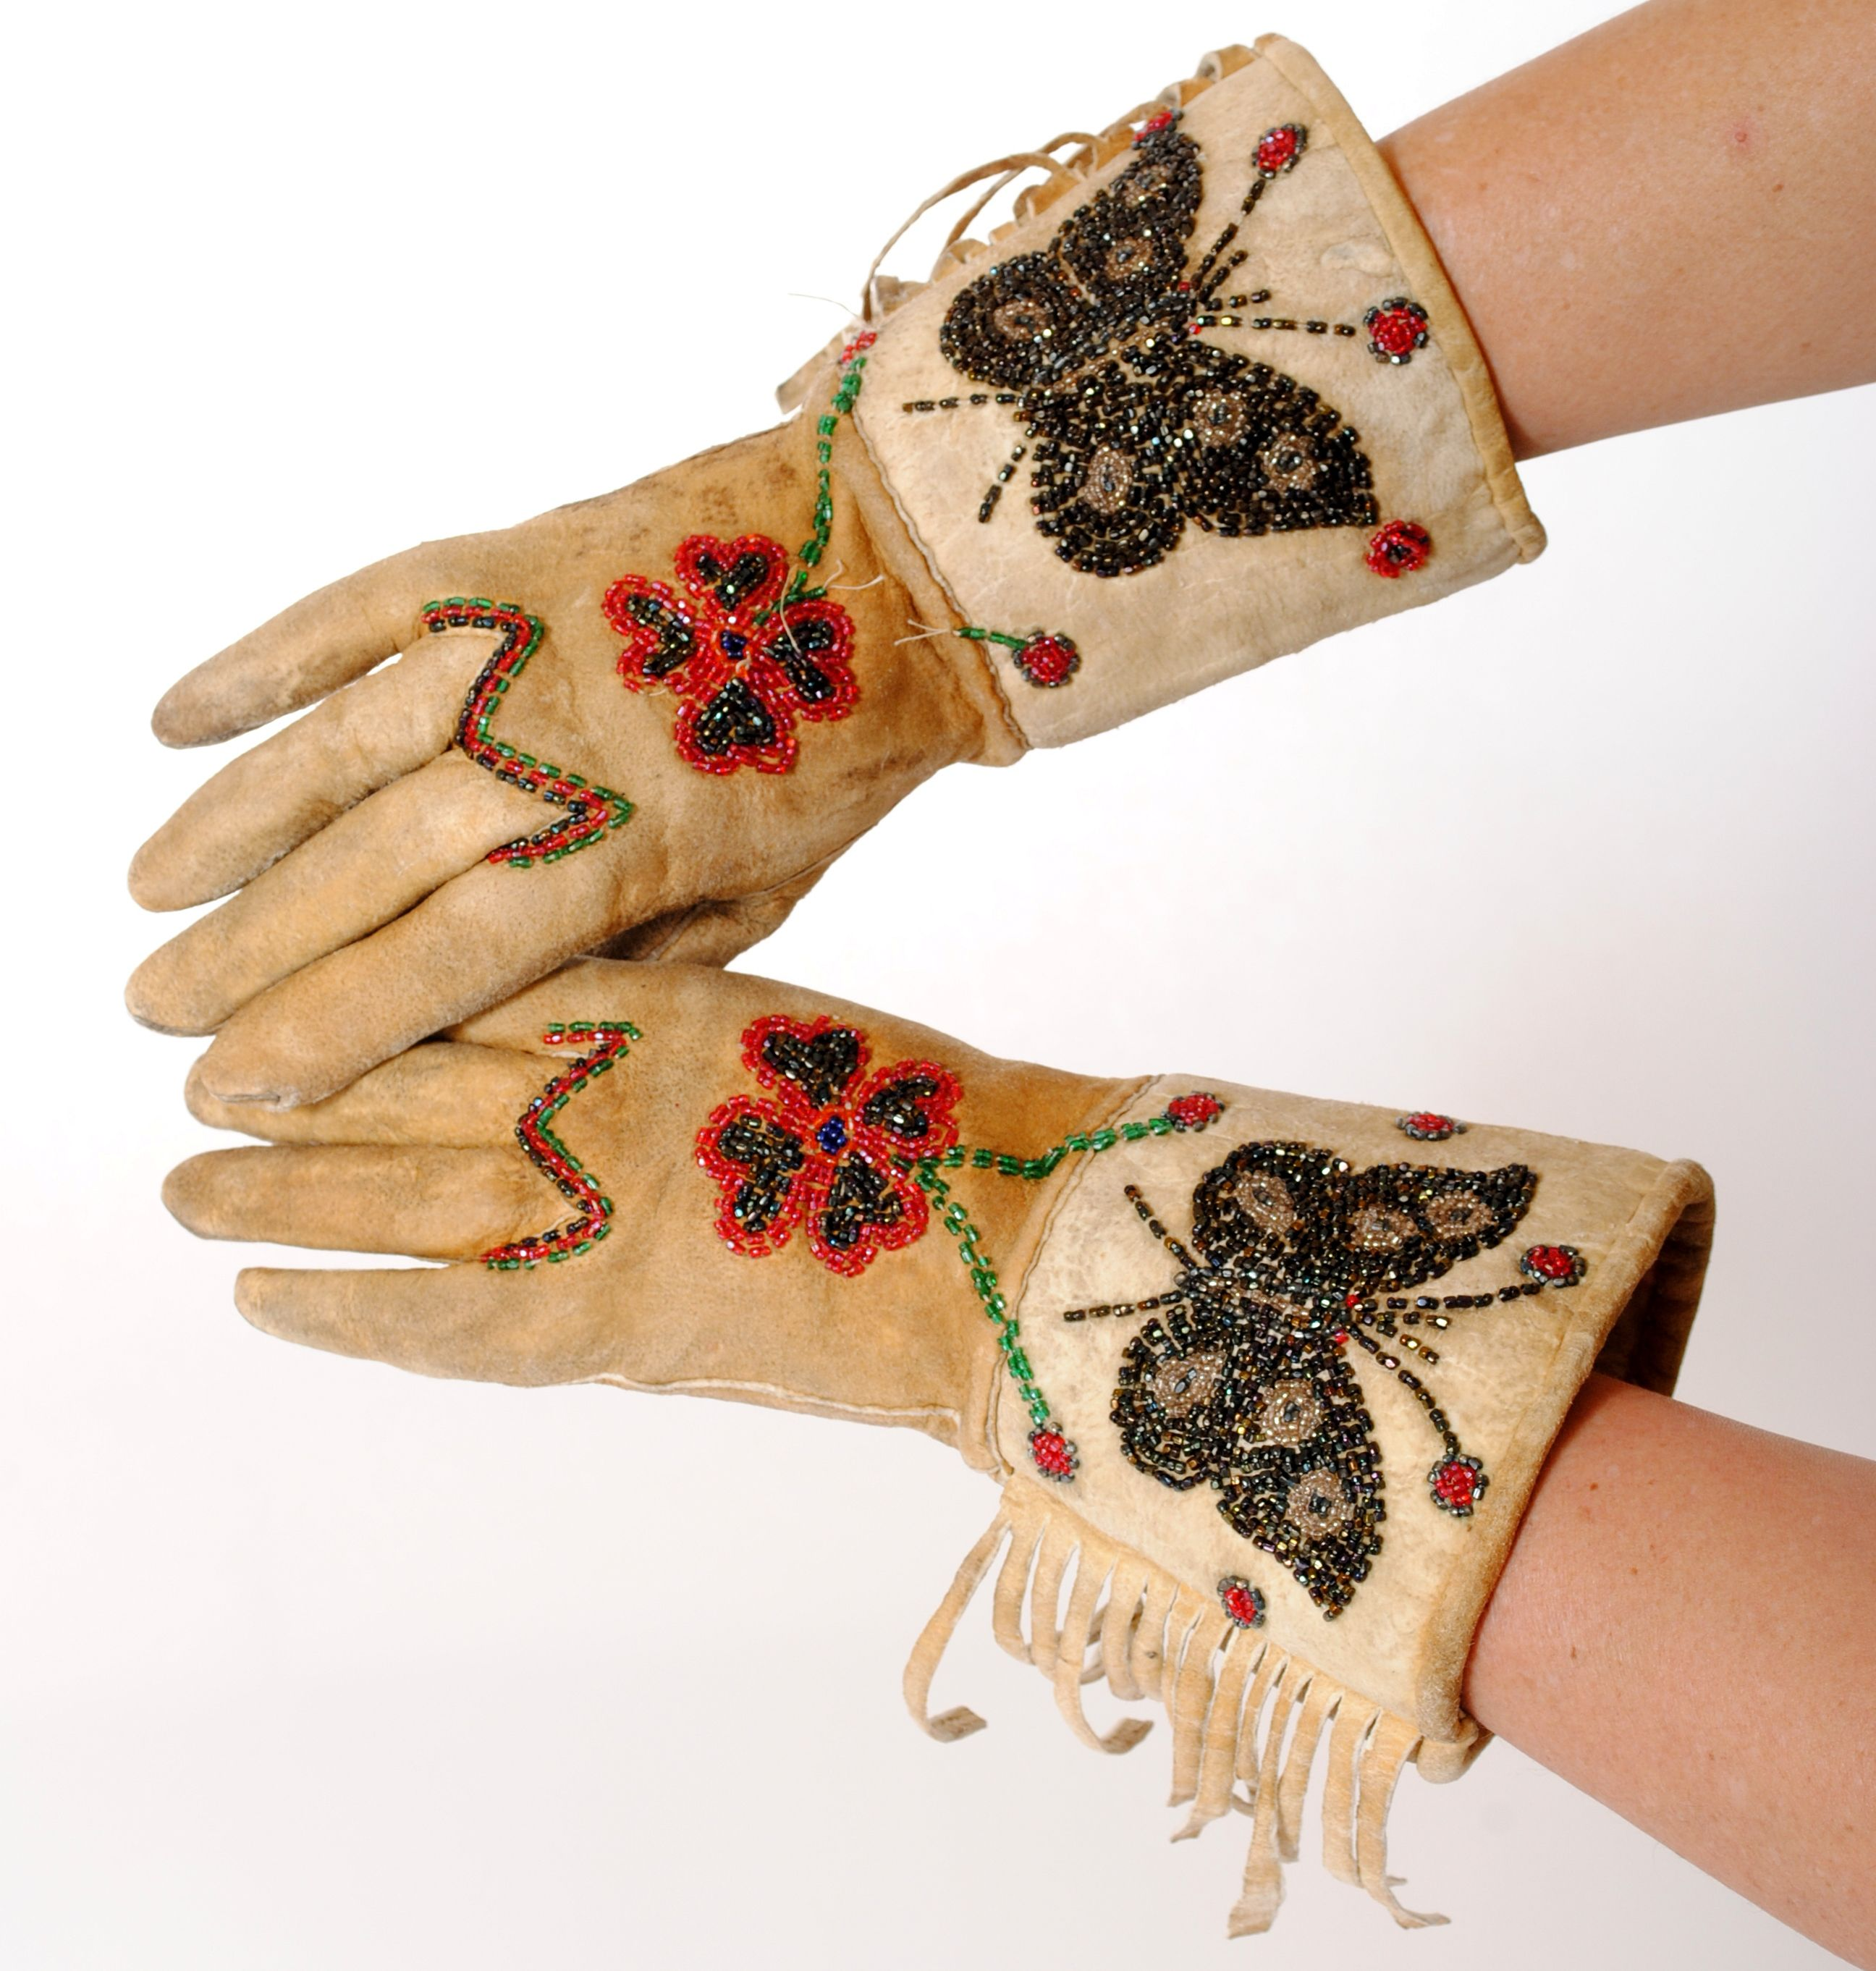 Vintage Leather Gauntlets with Native American Beading. Find these at luckystargallery.com $250